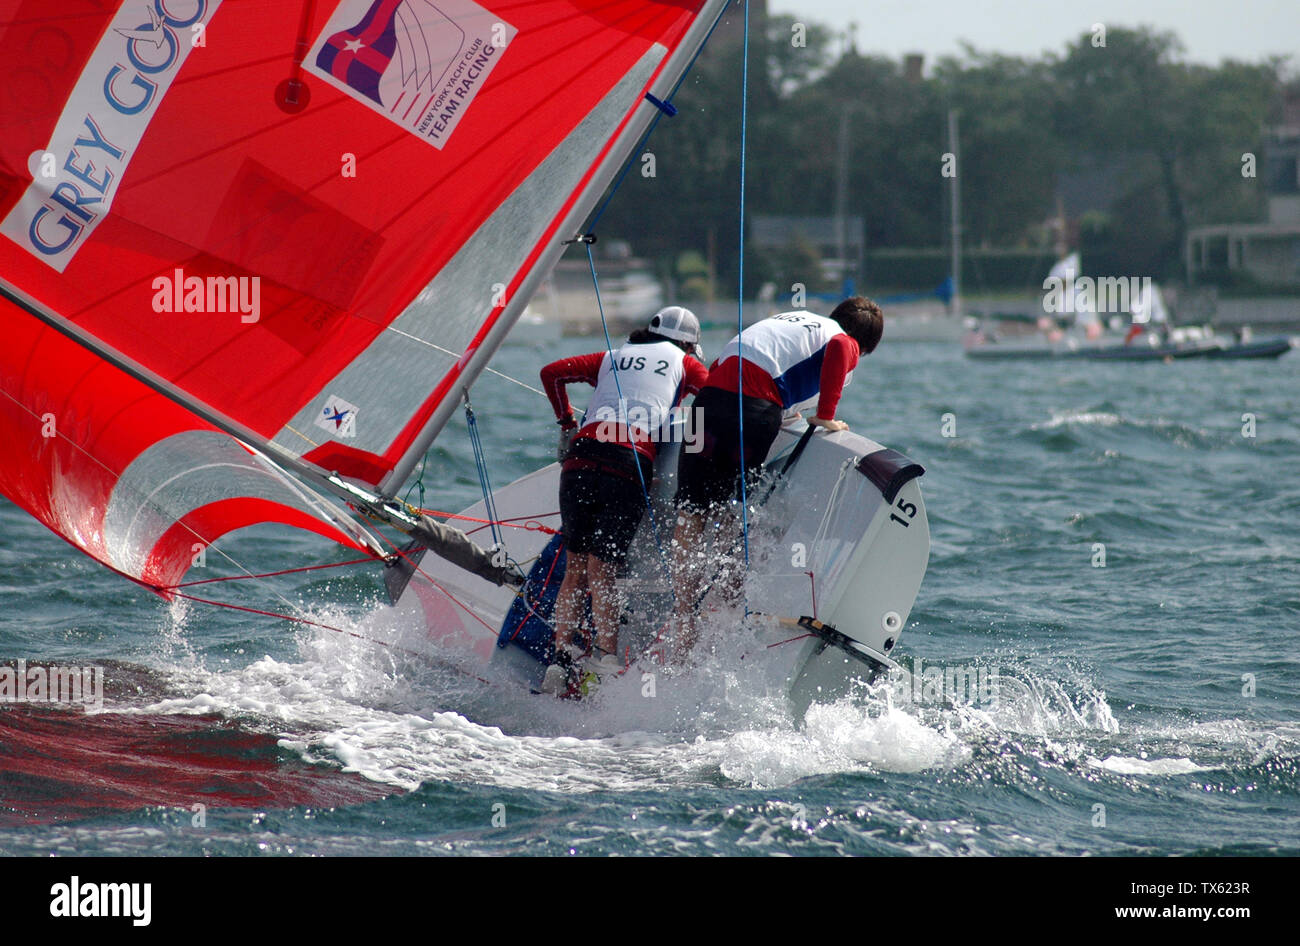 """English: A team at the 2005 ISAF Team Racing World Championship narrowly avoids capsizing. Deutsch: Die Crew einer Segeljolle bei den ISAF Team Racing World Championship 2005 kämpft gegen die drohende Kenterung.Weitere Informationen, es handelt sich um eine Vanguard 15 Jolle (Bilder der Klasse / Ankündigung der ISAF ), das Team Australia 2 (AUS 2) beendete die Meisterschaften an 13. Position ([1]) und hat die Situation letztlich doch noch gemeistert [2].; 26 September 2005; Original photo by Cathy Giacomini:  Original photo, edited by User:Btr; Cathy Giacomini (original photo), edited by User Stock Photo"